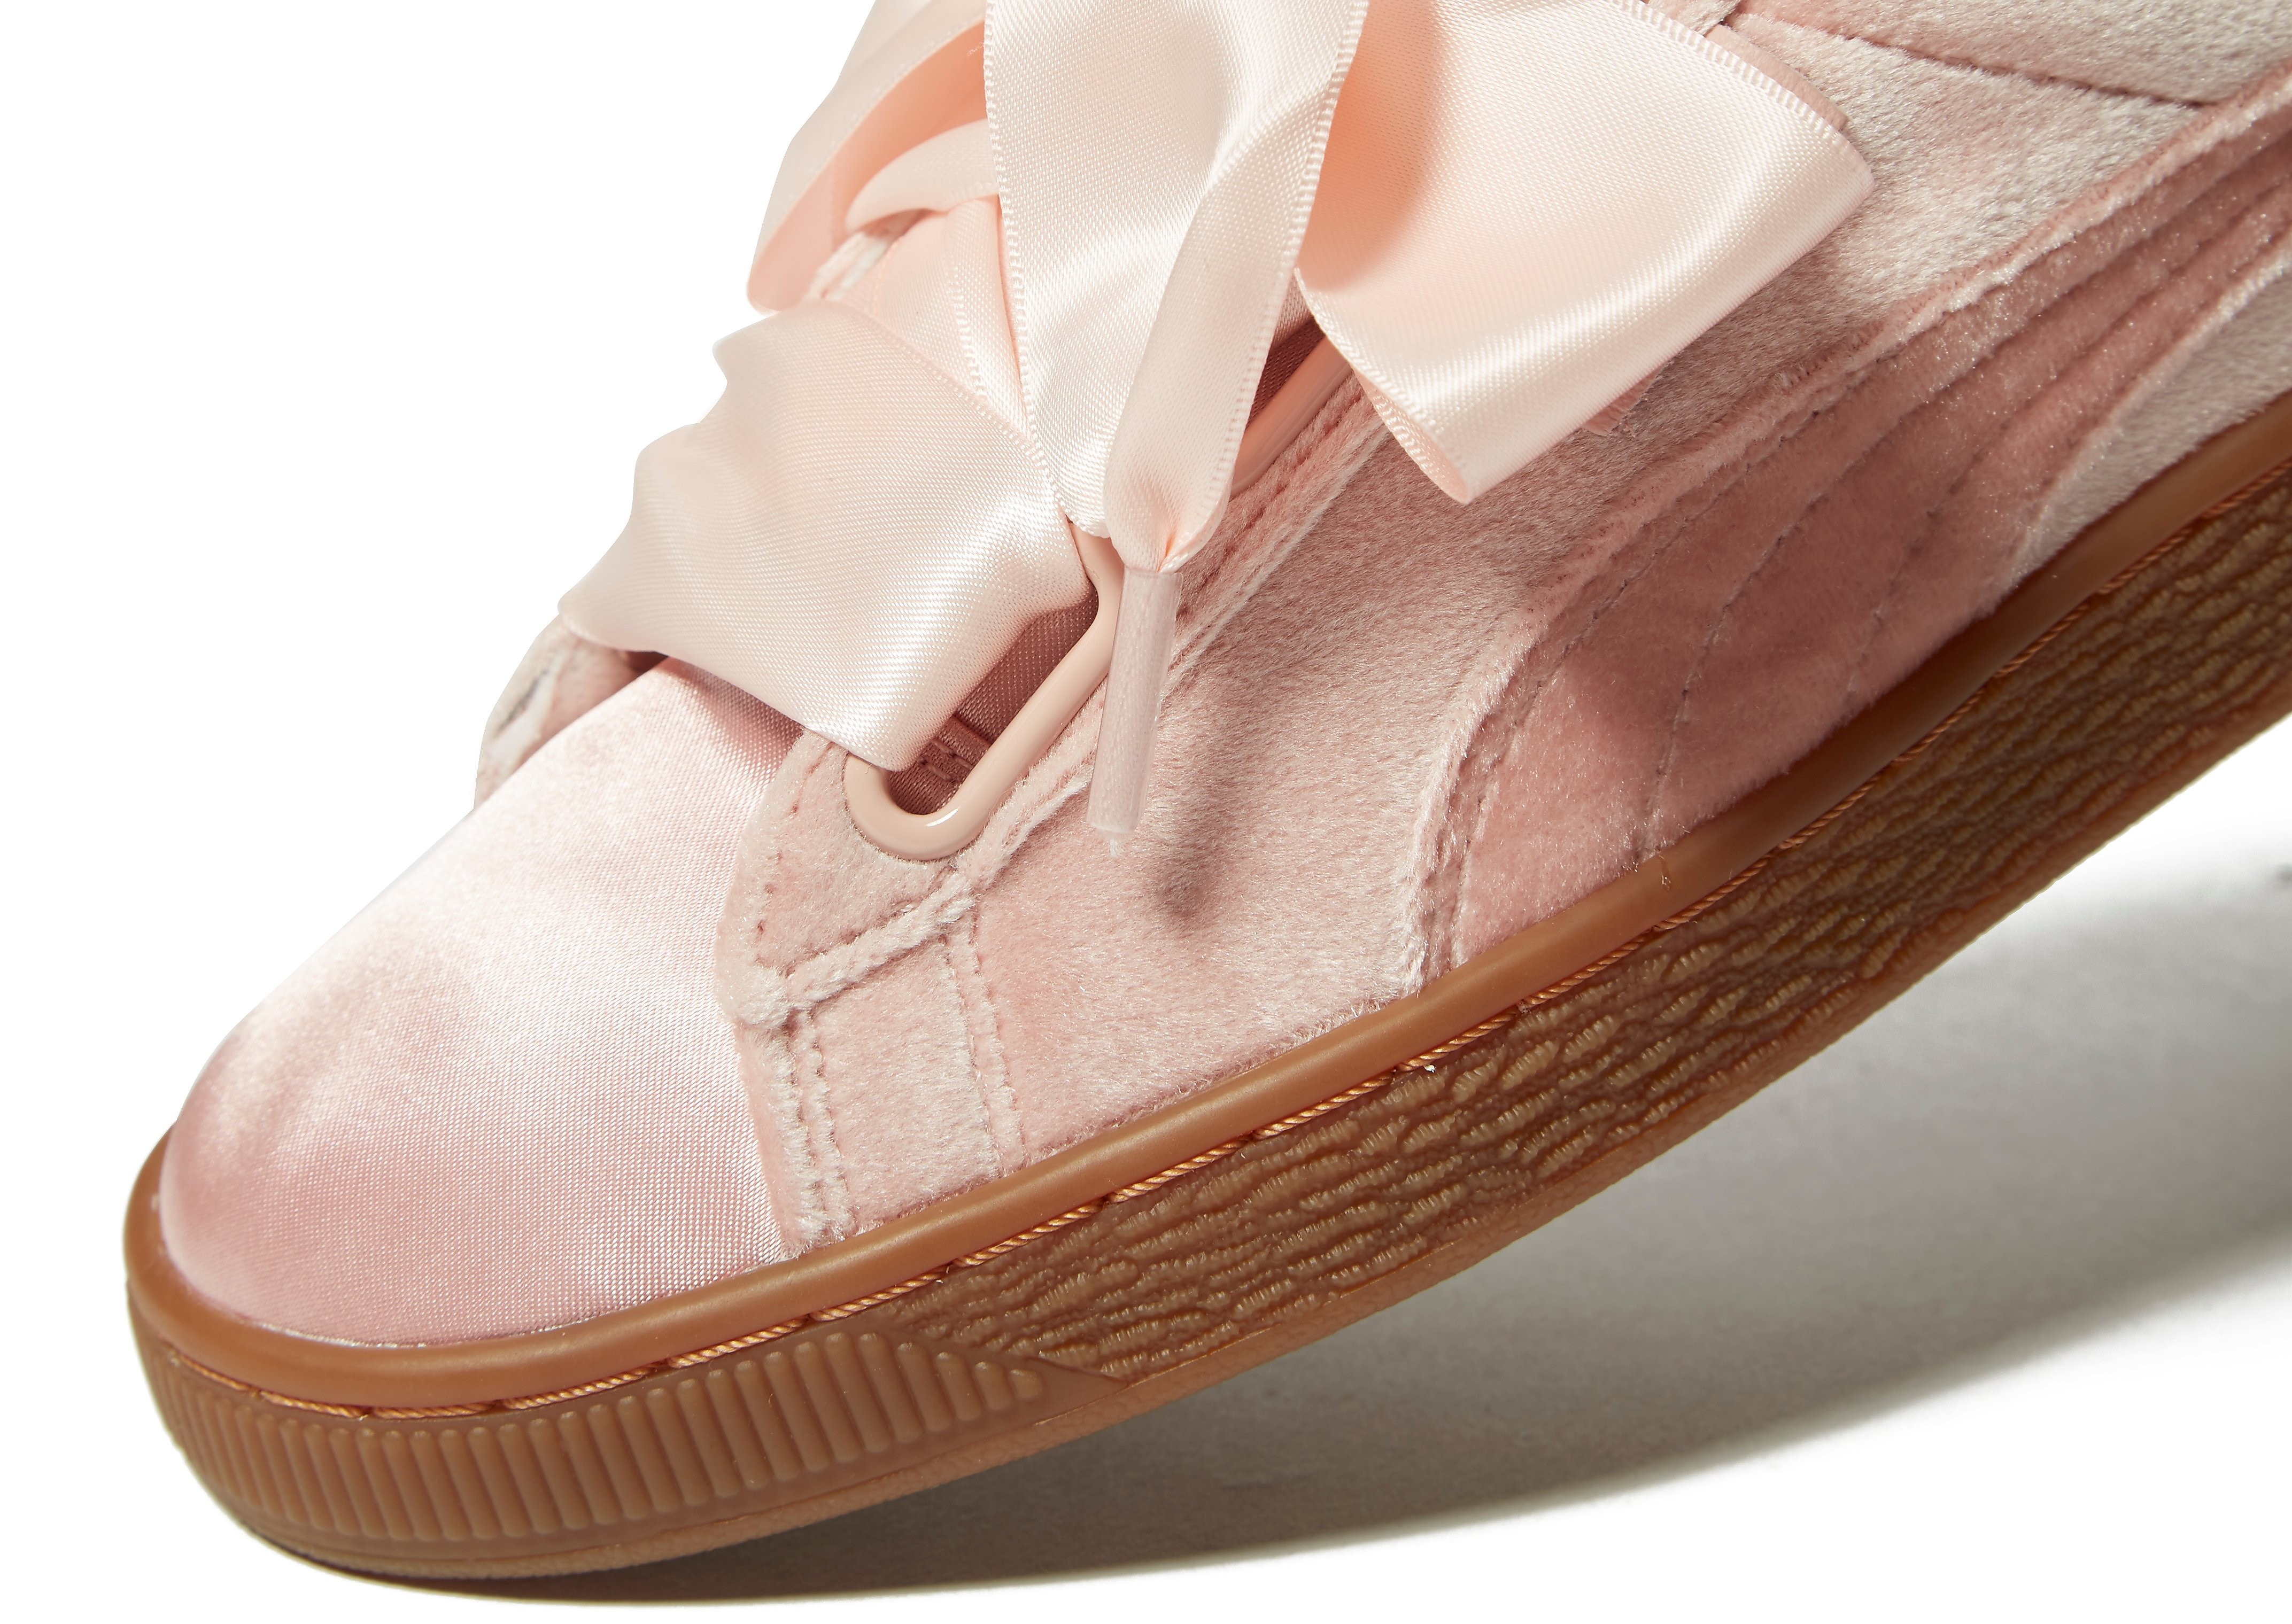 PUMA Basket Heart Velvet Women's